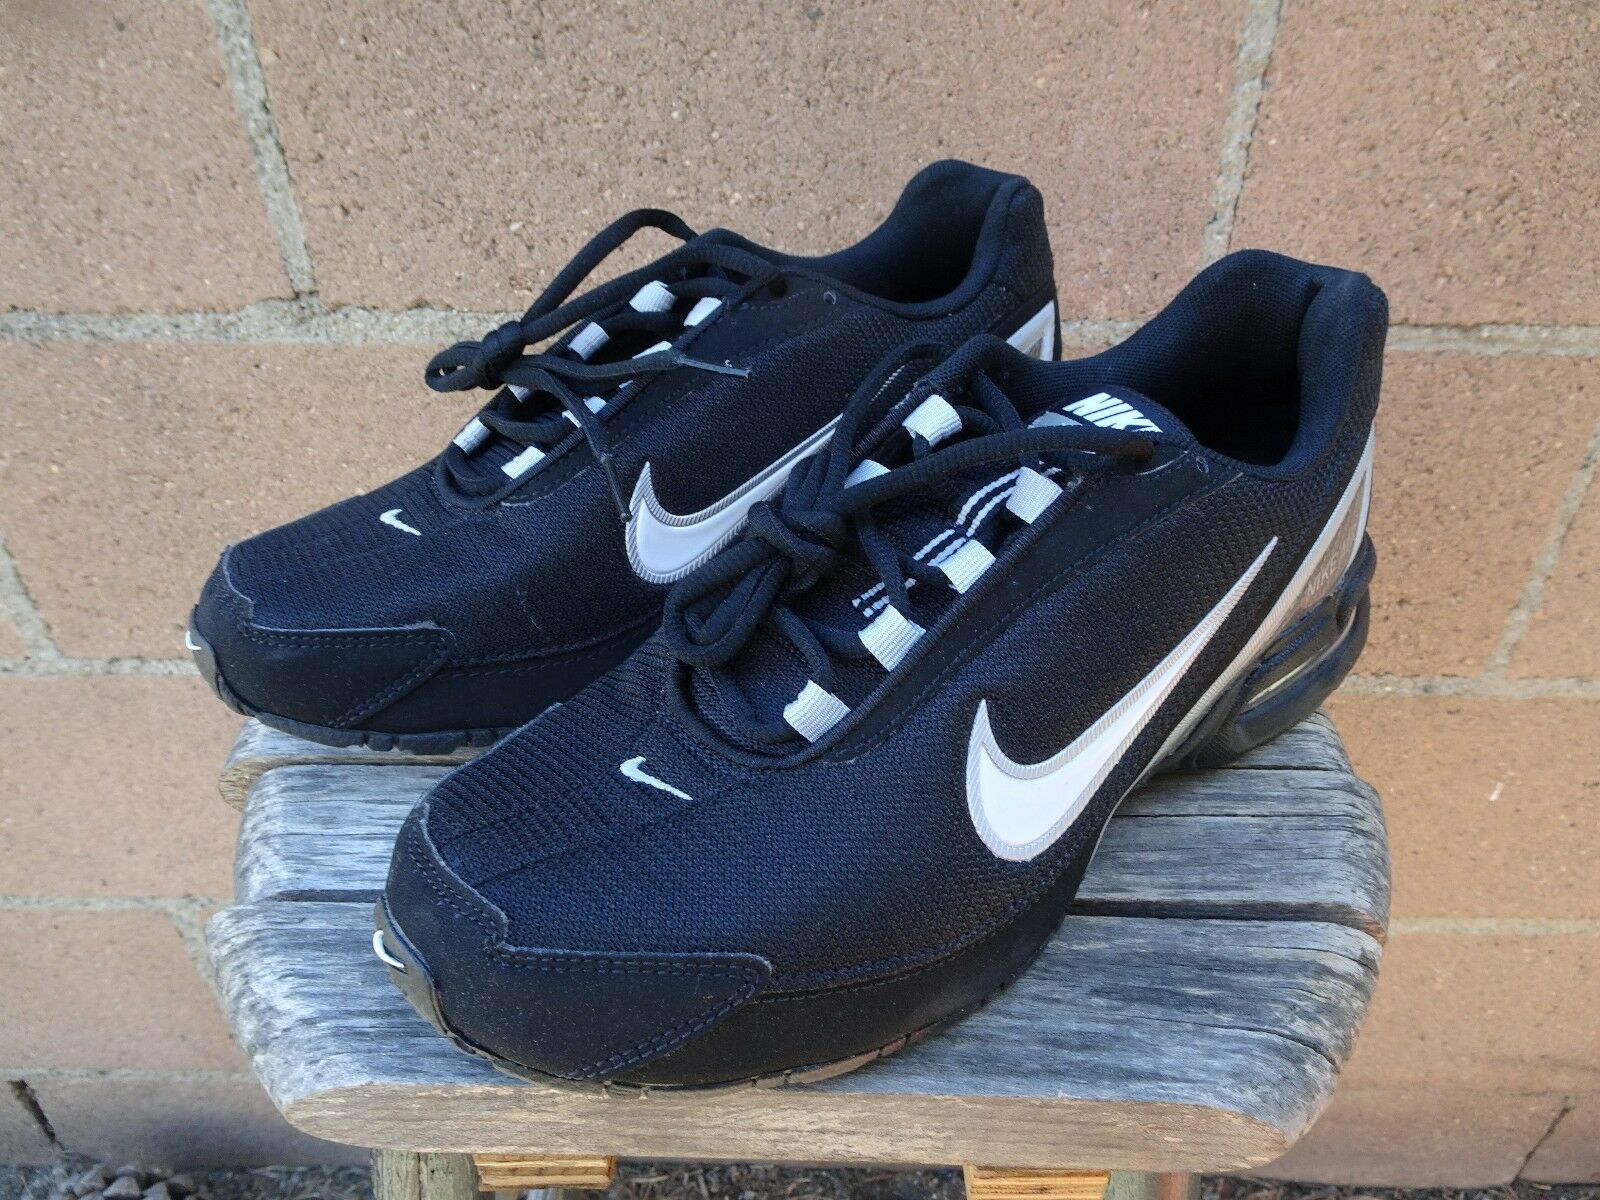 NIKE Air Max Torch 3 Black and White Running shoes 319116 001 Sz 9